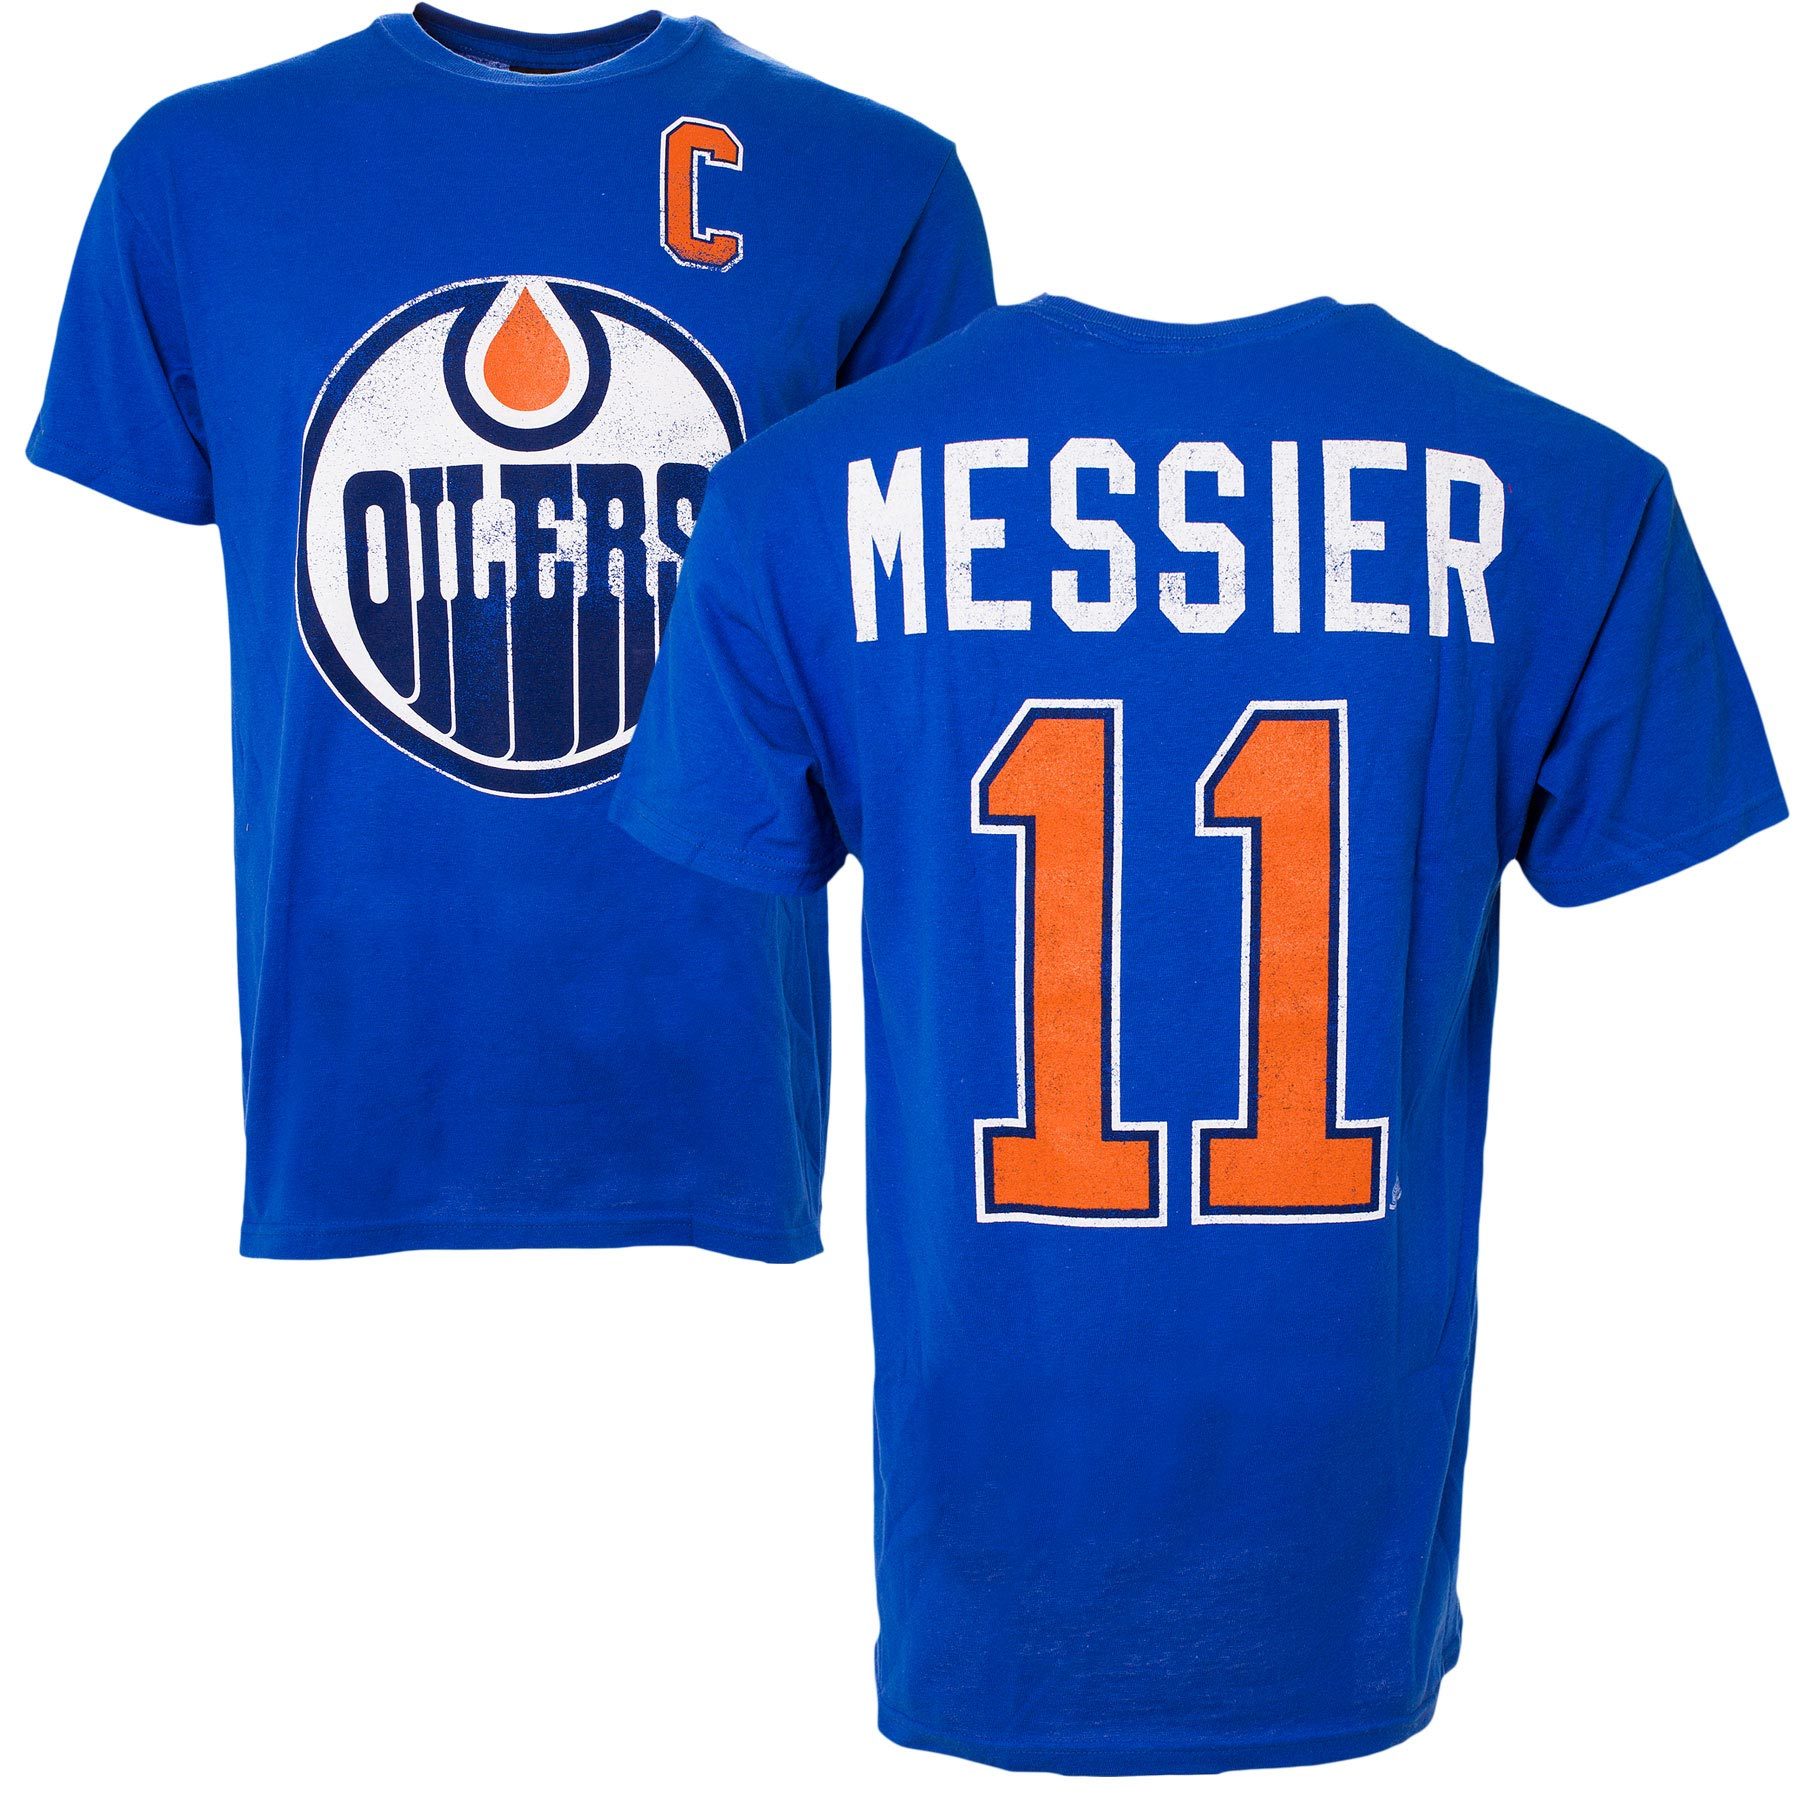 the best attitude dd1f5 19363 where to buy vintage edmonton oilers jersey 8c45b 387be